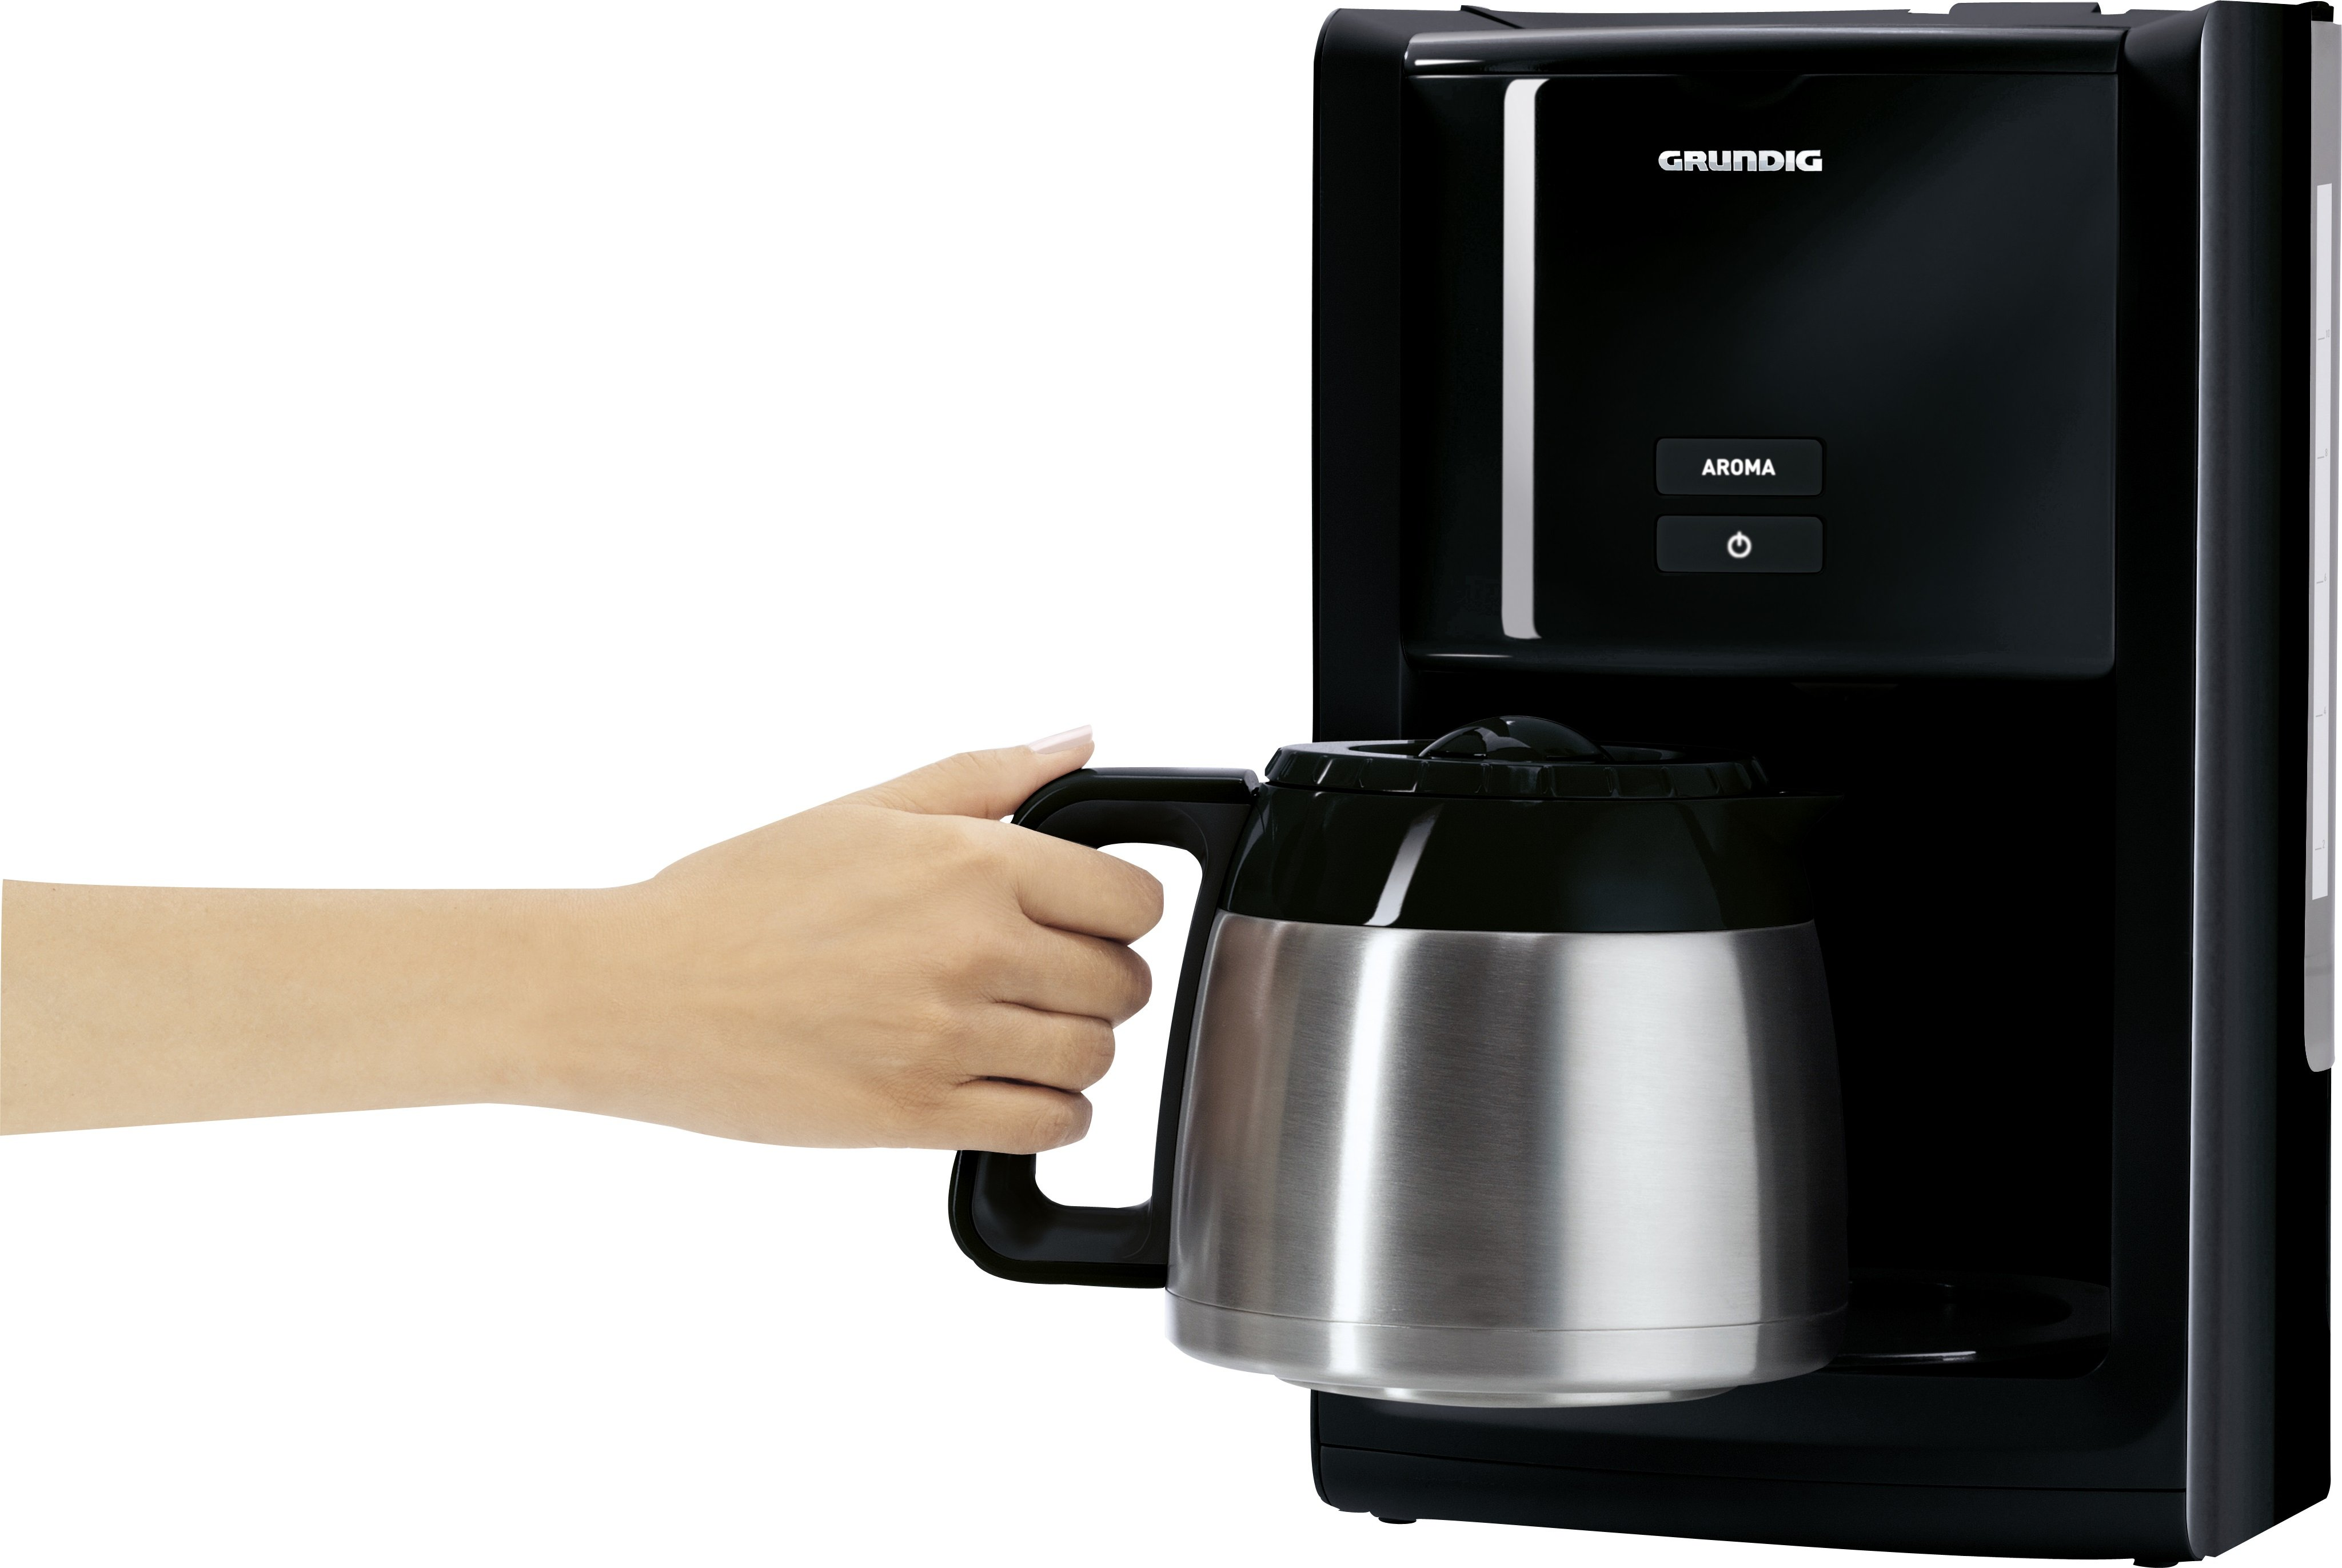 grundig km 8280 kaffeemaschine gourmet 1000 watt 1 5 l isolierkanne schwarz. Black Bedroom Furniture Sets. Home Design Ideas